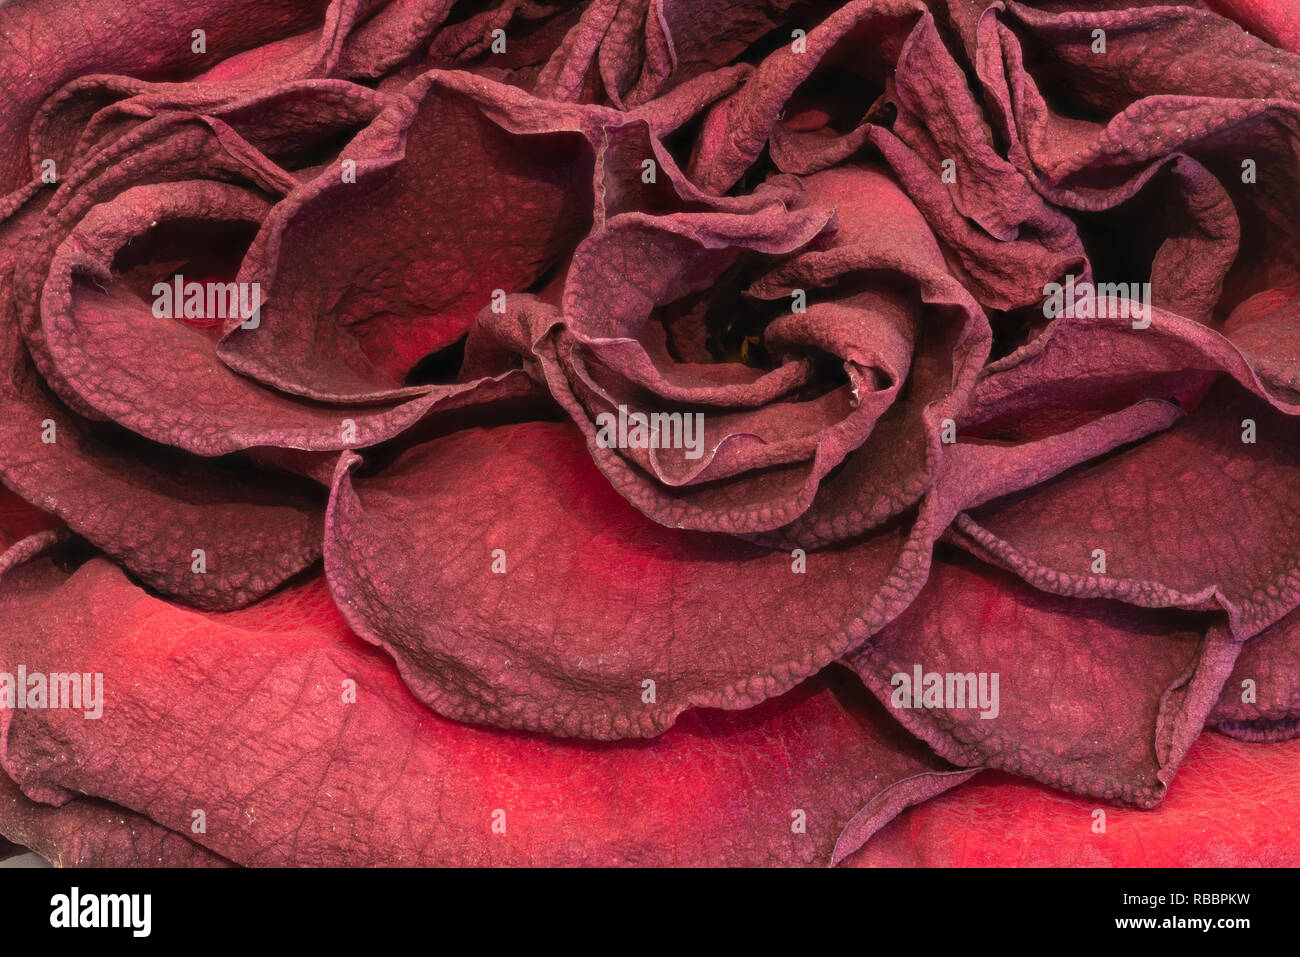 Fine art still life floral close up macro of petals of an aged lush purple dark red velvety rose blossom with detailed texture - Stock Image